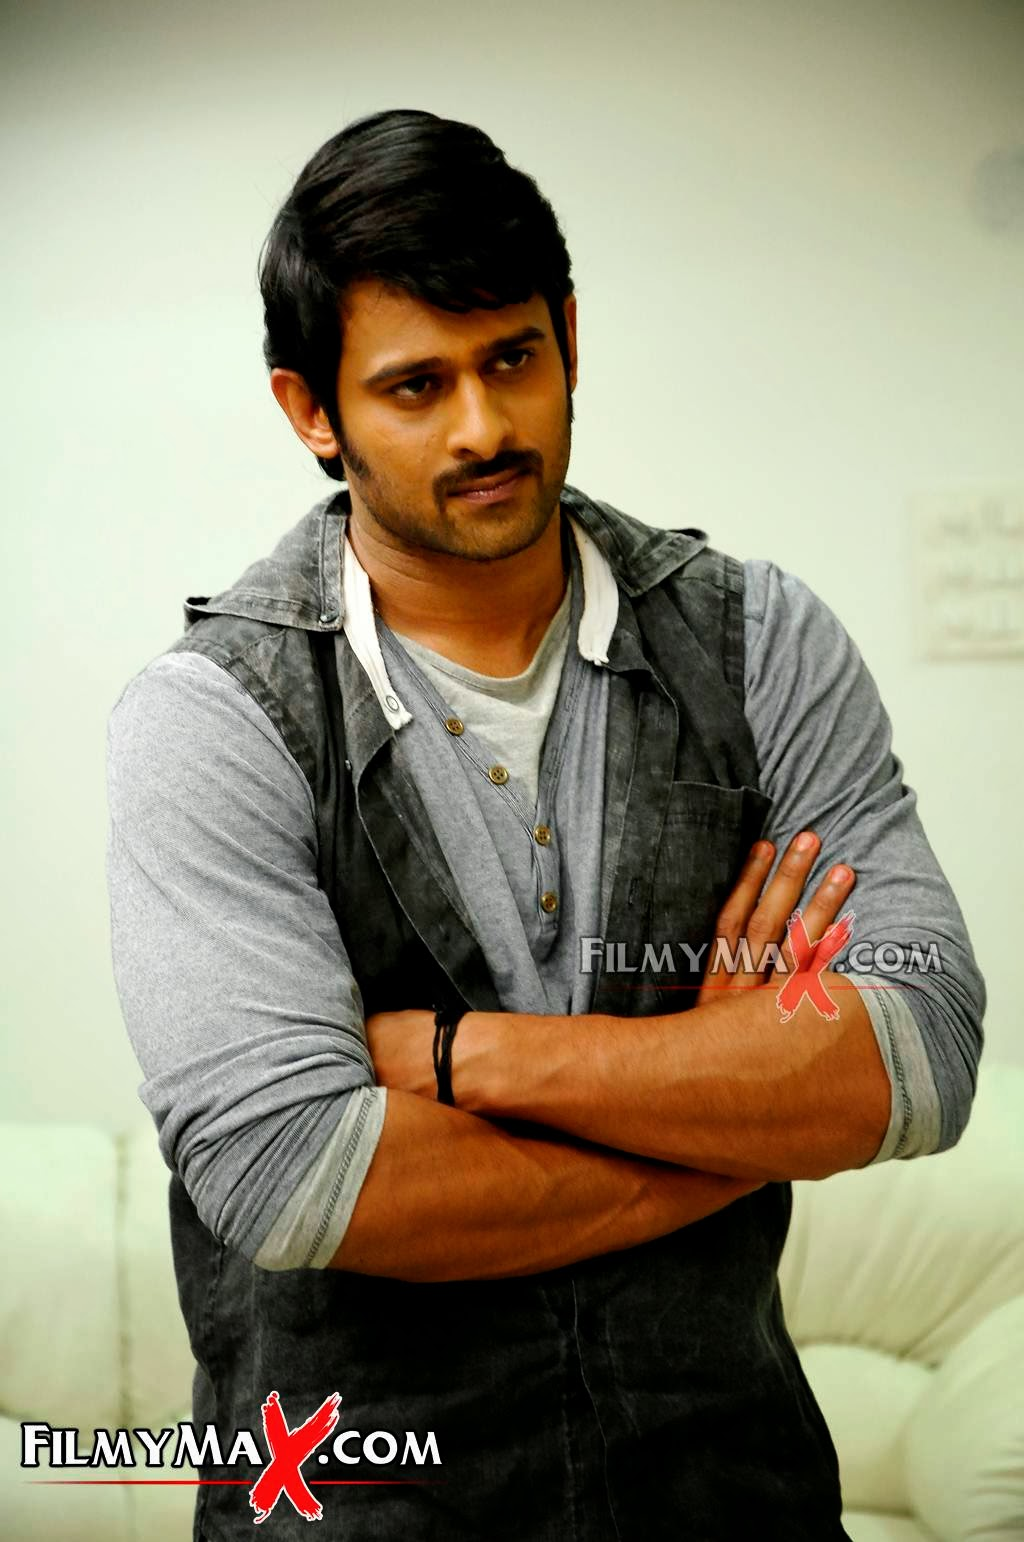 unseen hd stills of darling prabhas | the best fan of prabhas